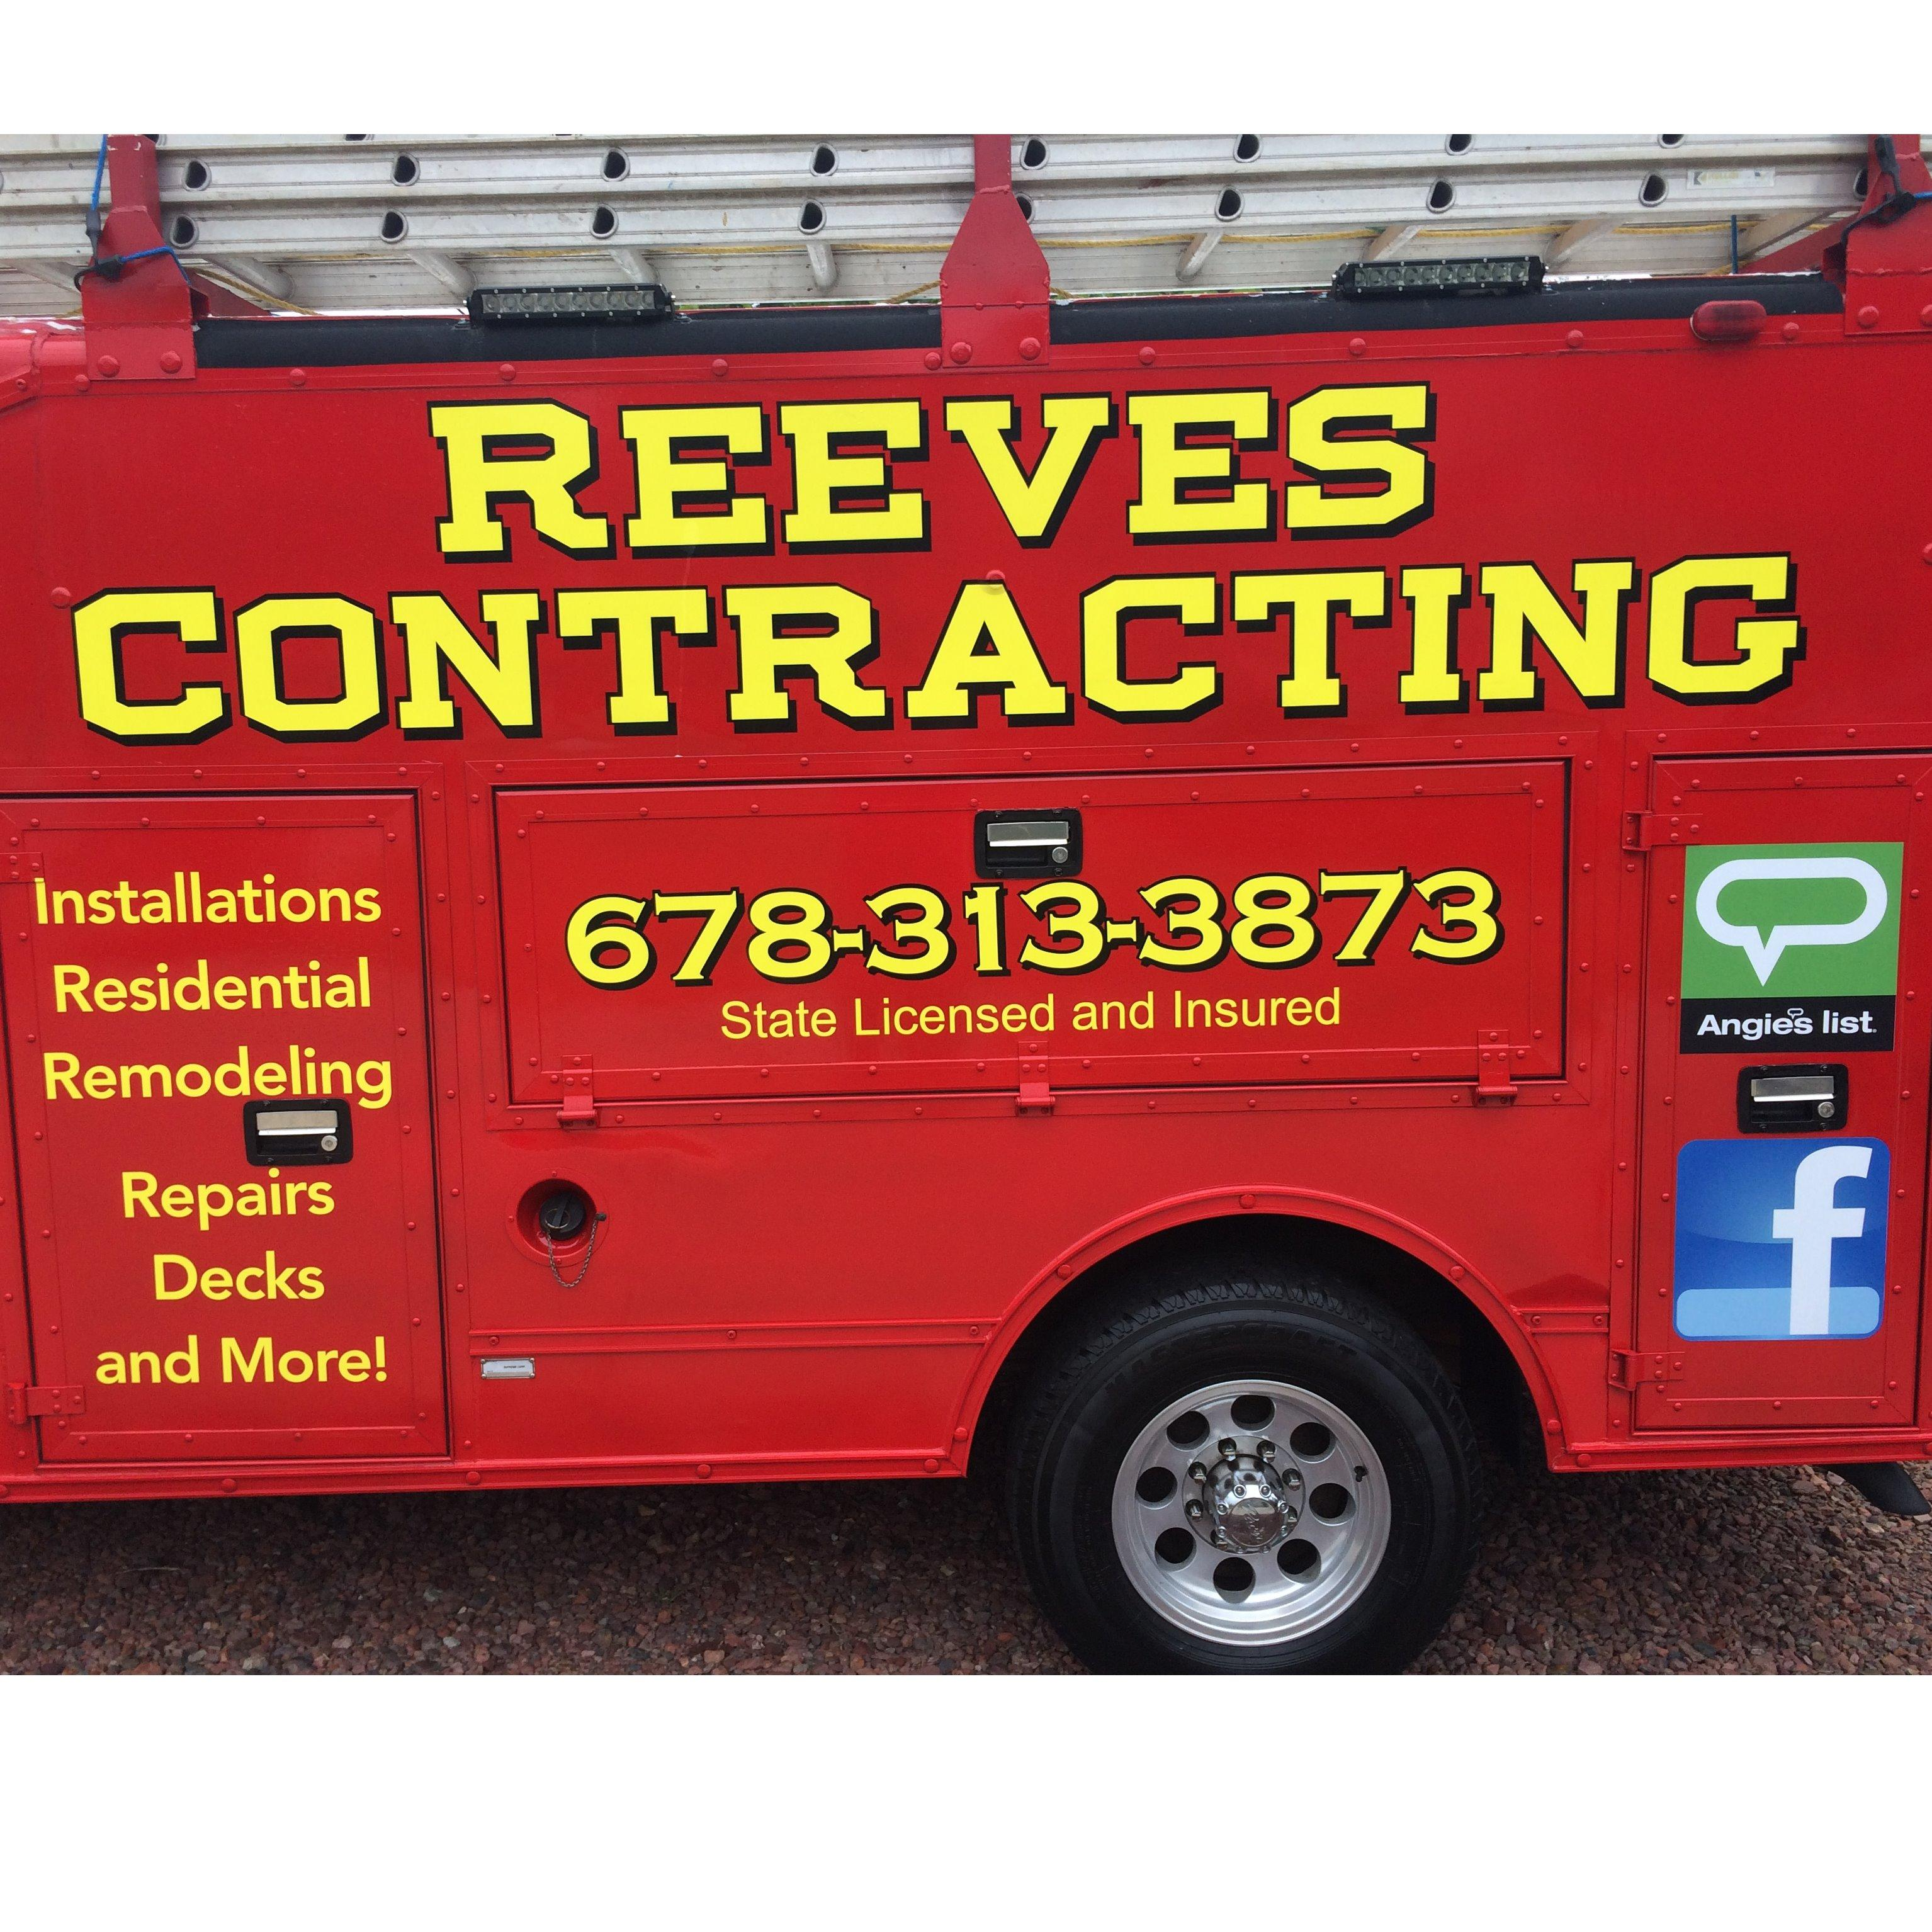 Reeves Contracting & Professional Pressure Washing Logo